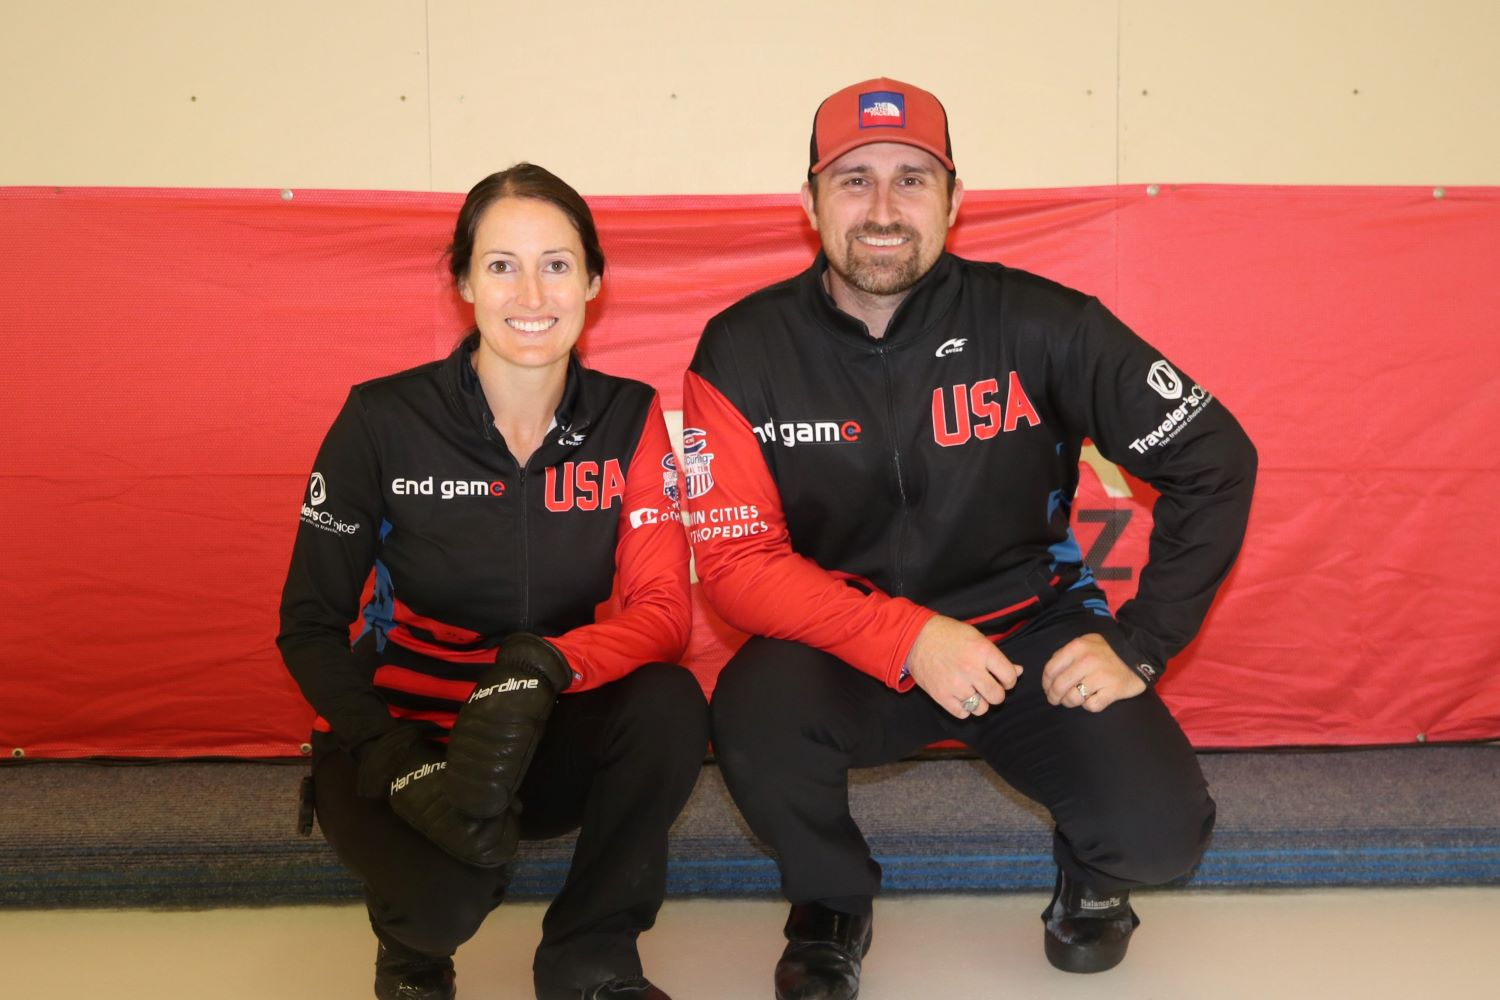 Team USA - Tabitha Peterson and Joe Polo